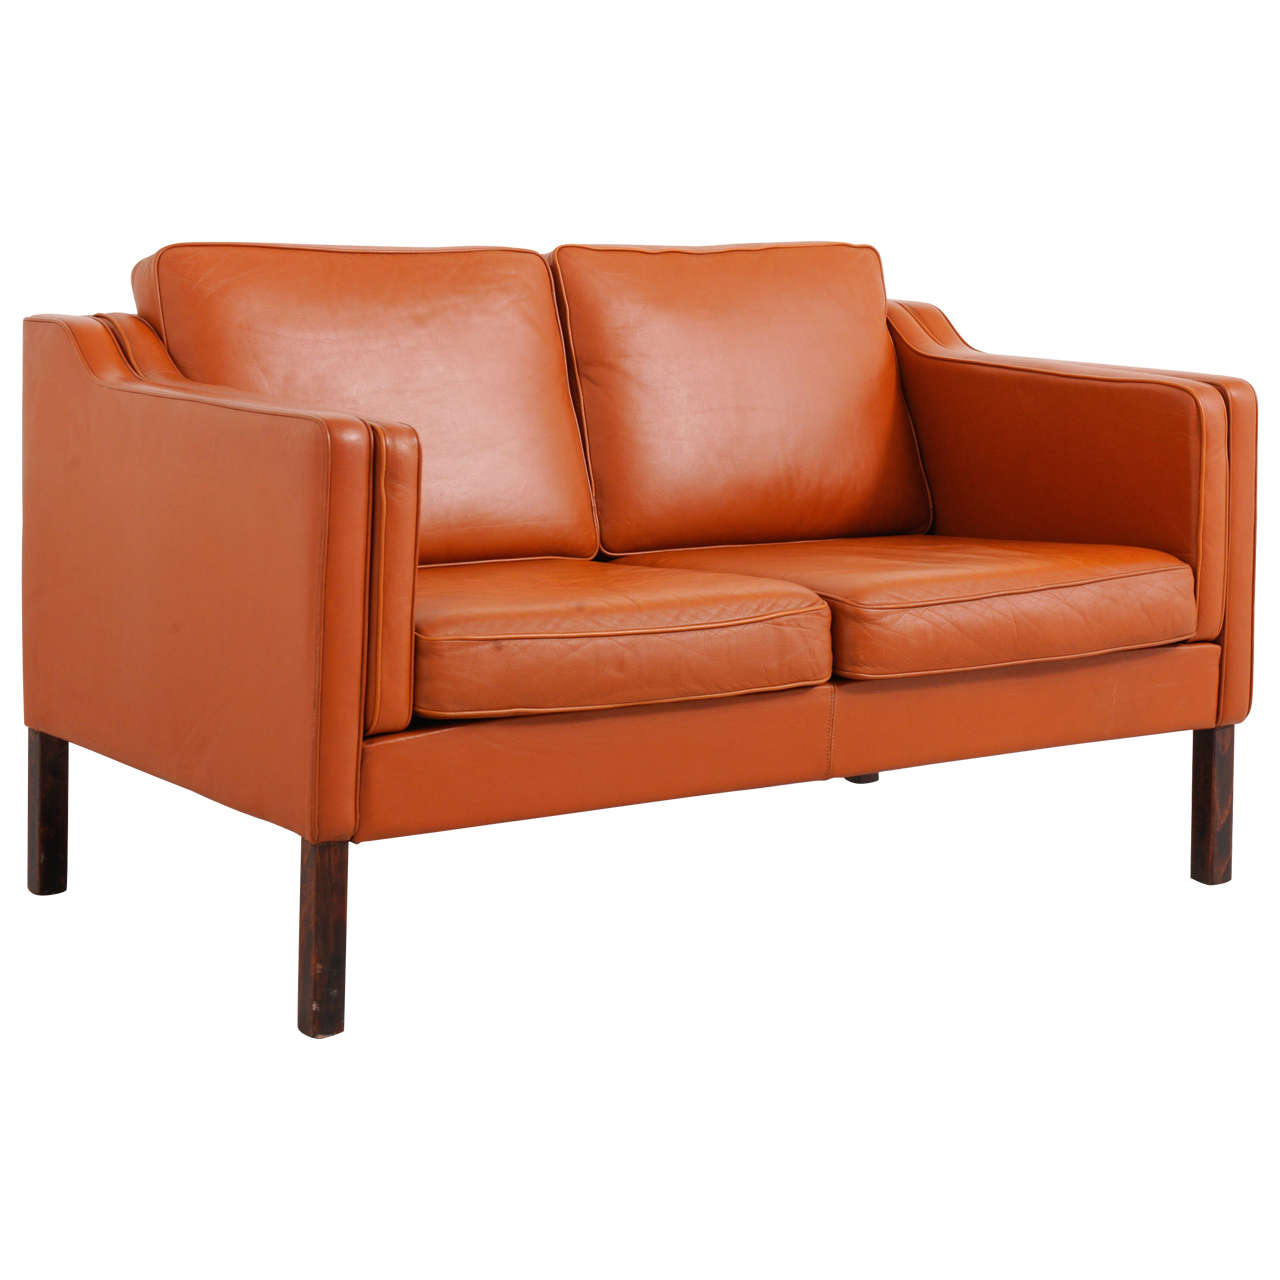 borge mogensen cognac leather sofa at 1stdibs. Black Bedroom Furniture Sets. Home Design Ideas